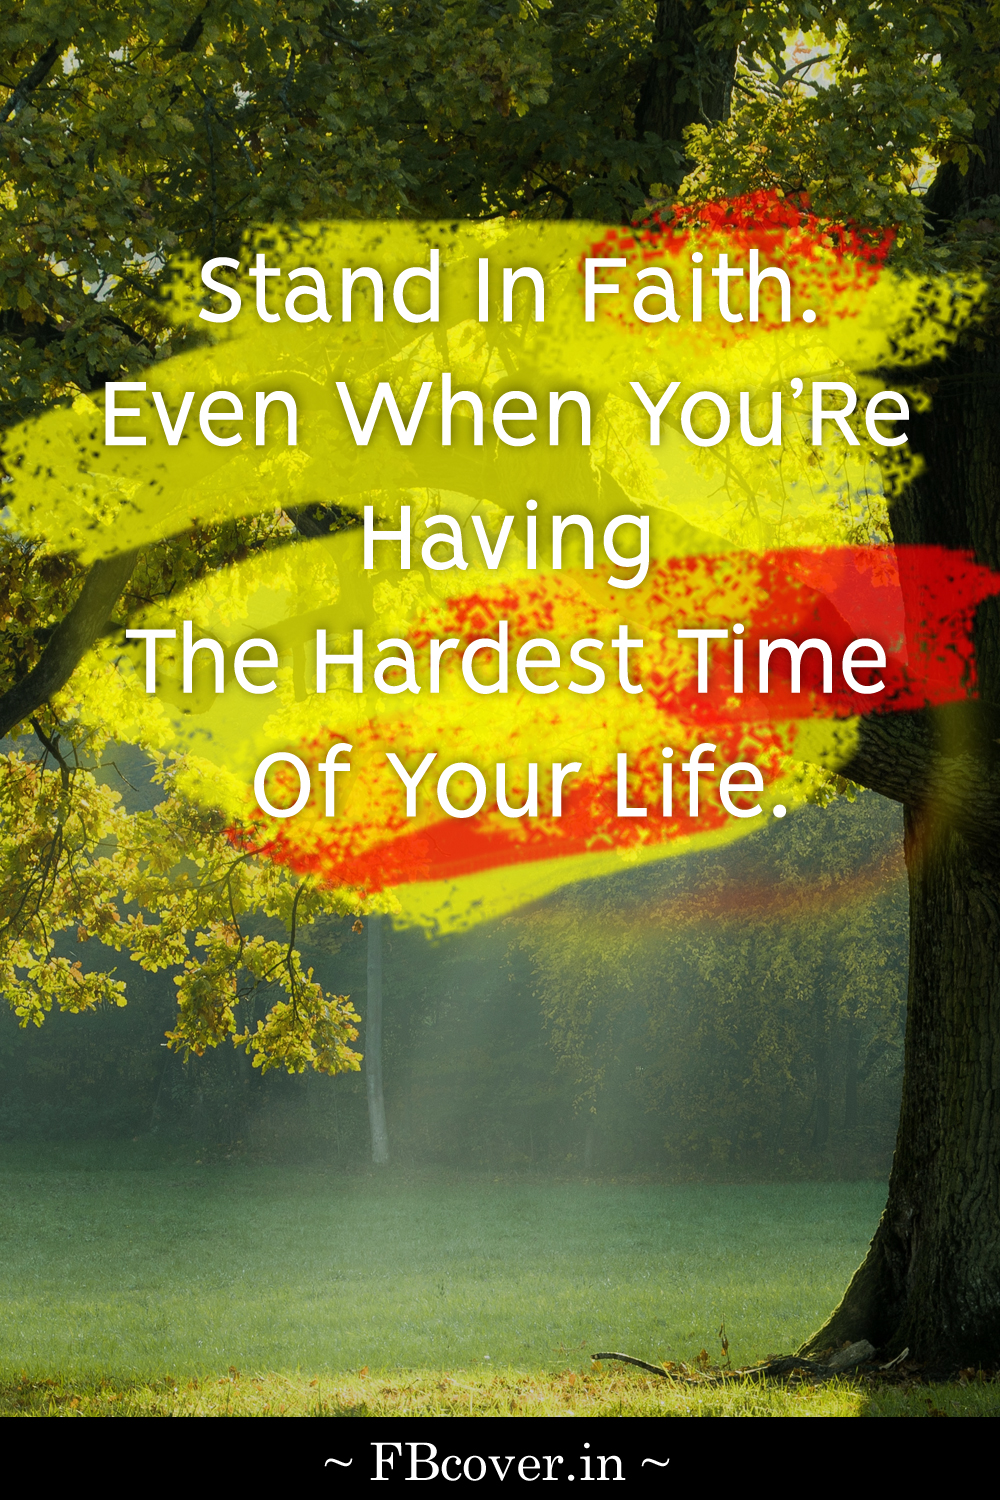 """Faith Quotes: """"Stand in faith, even when you're having the hardest time of your life."""""""